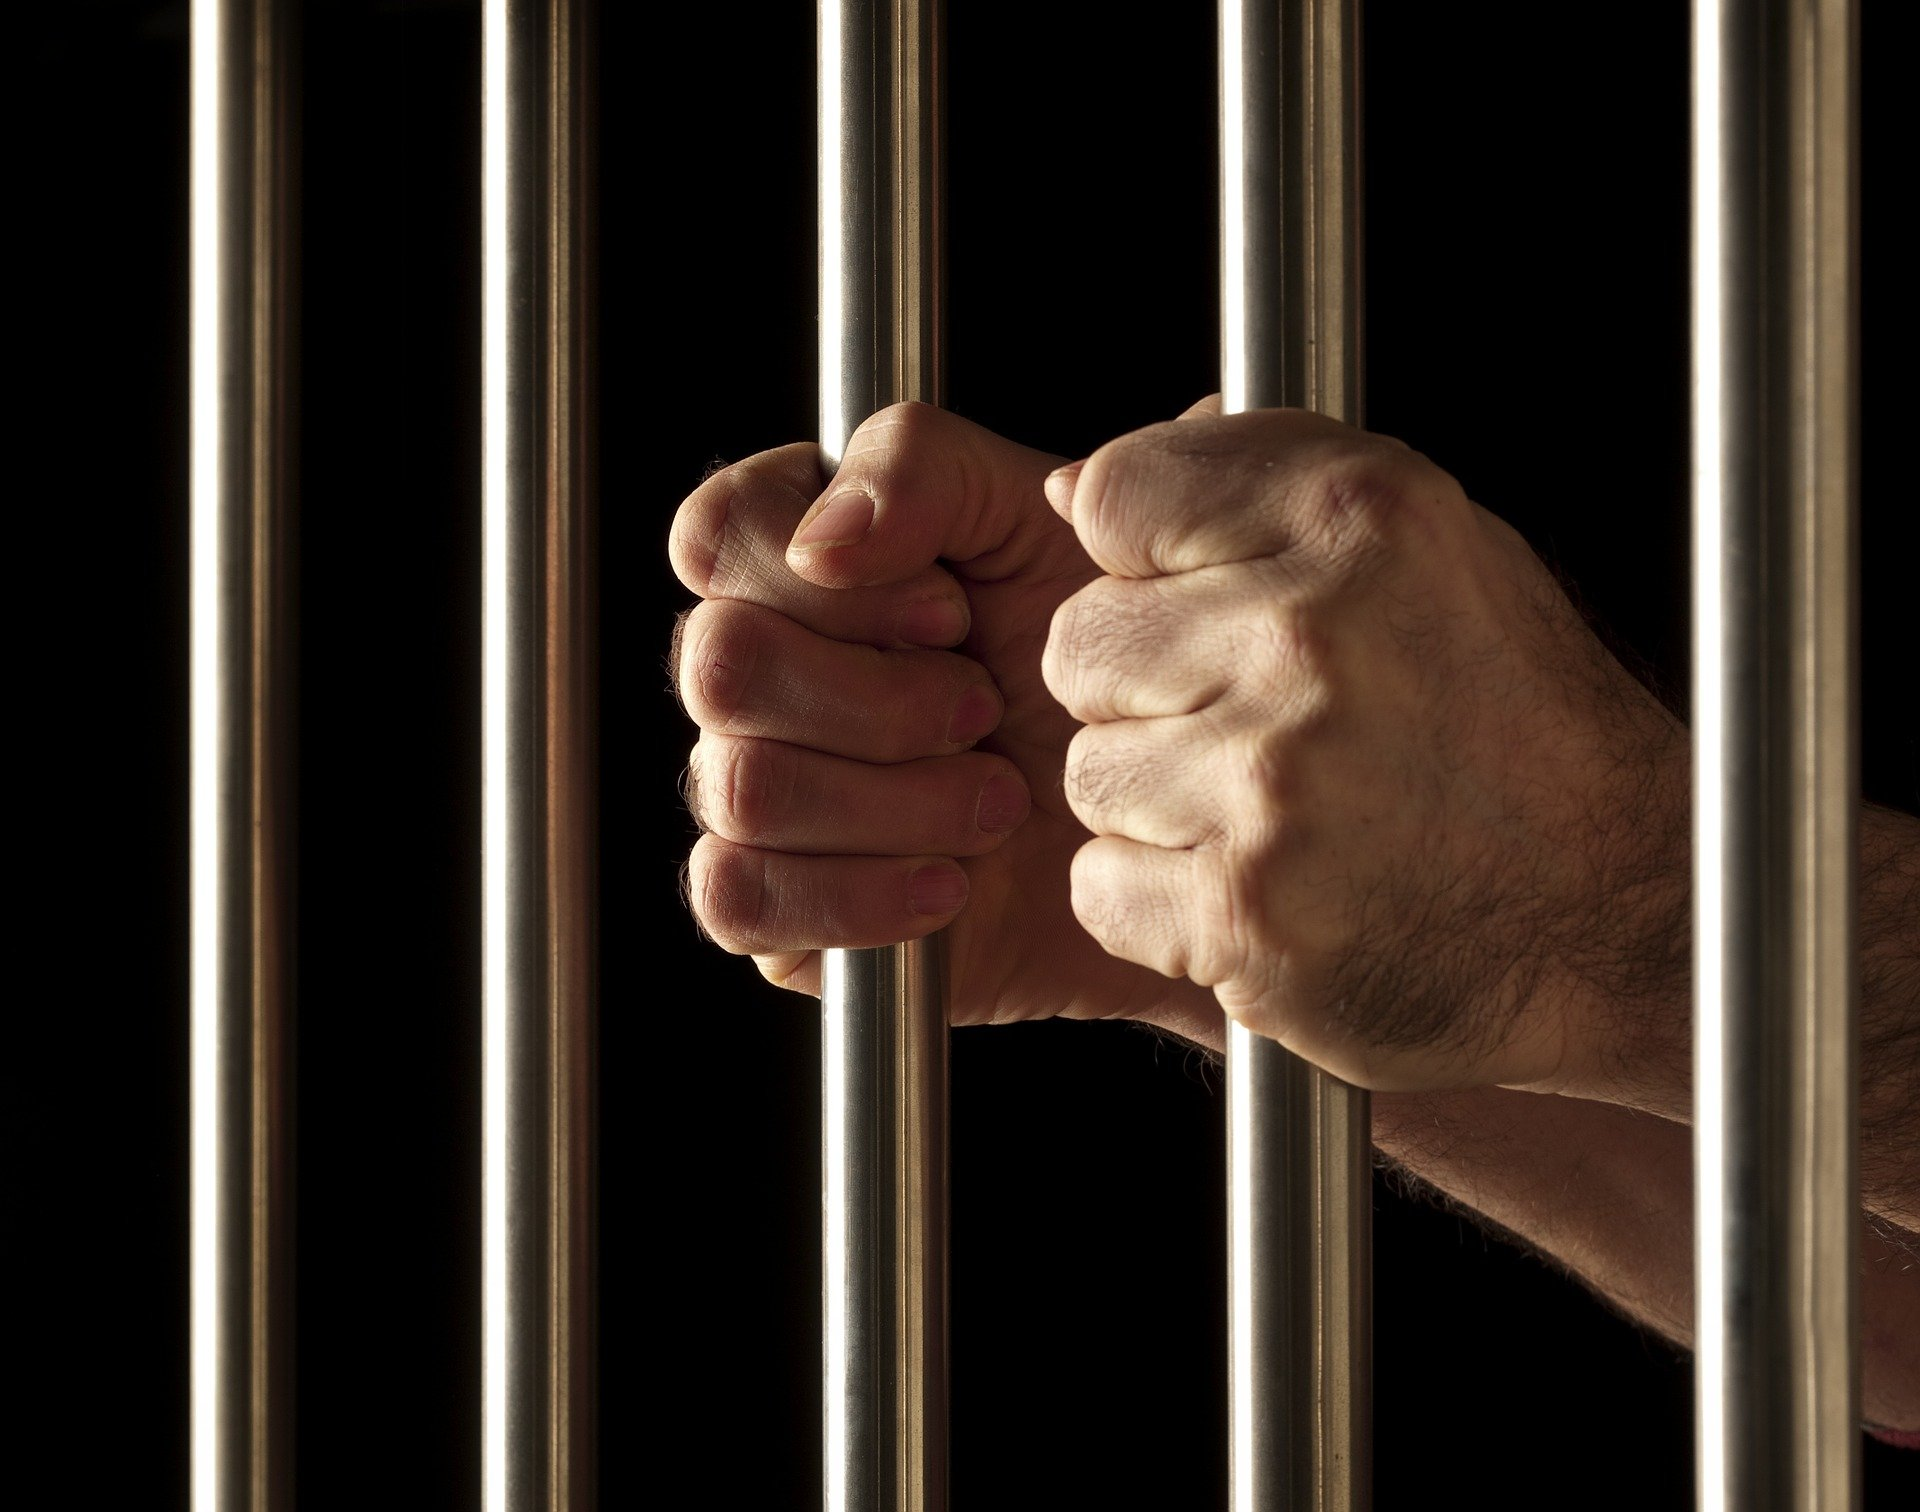 Pictured - A man behind jail cells   Source: Pixabay